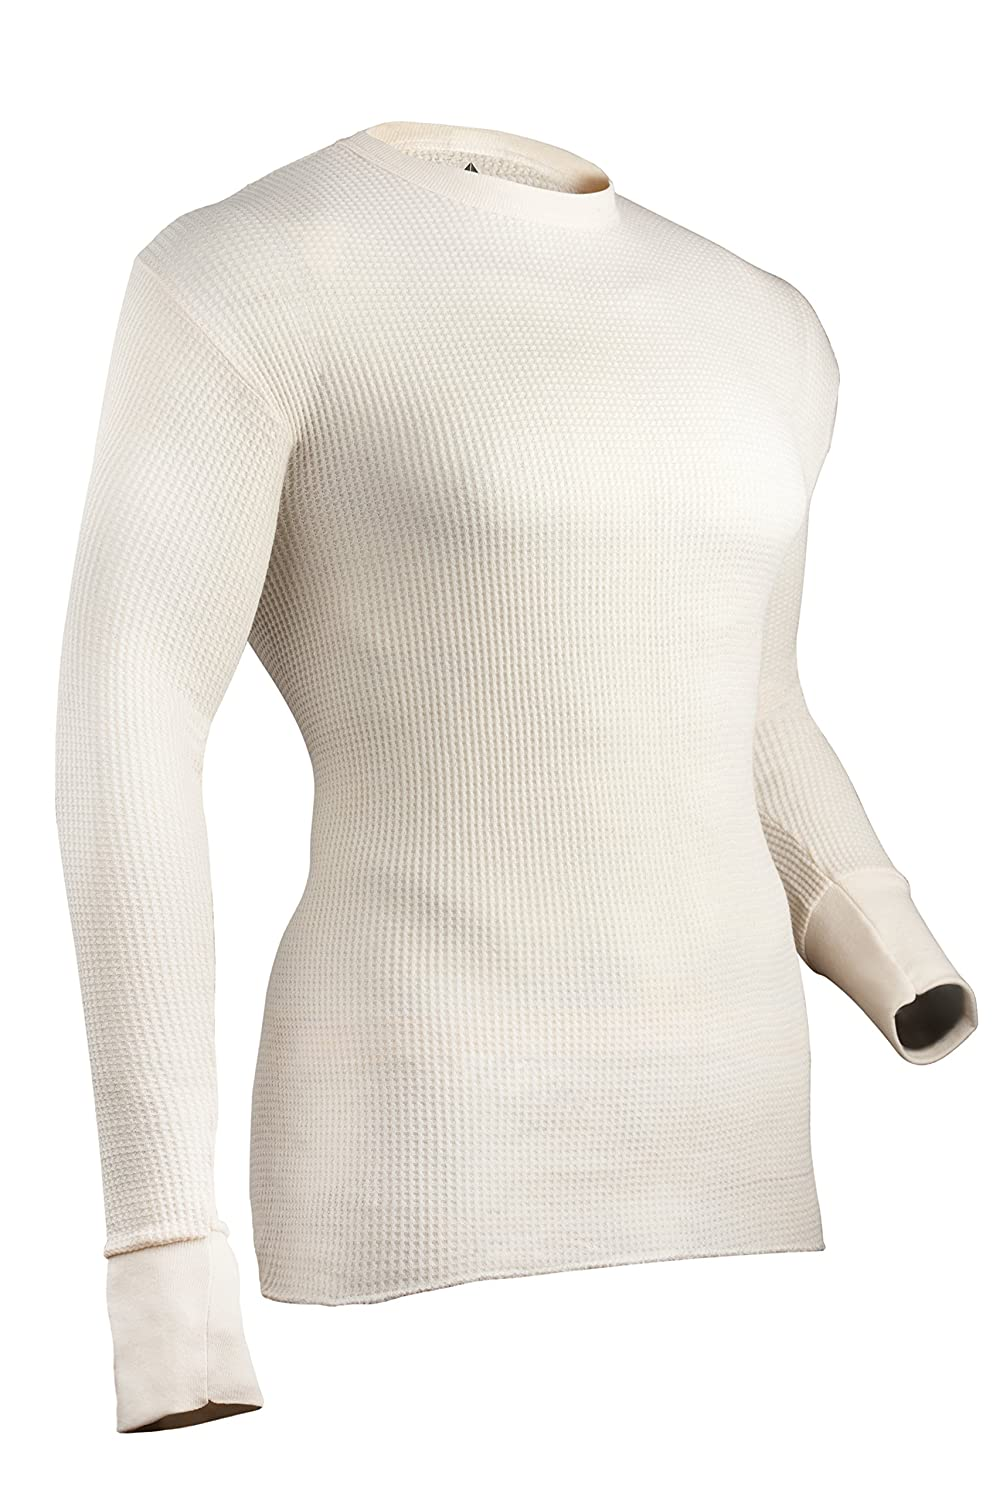 Indera Men's Cotton Waffle Knit Heavyweight Thermal Underwear Top ColdPruf Baselayer 839LS